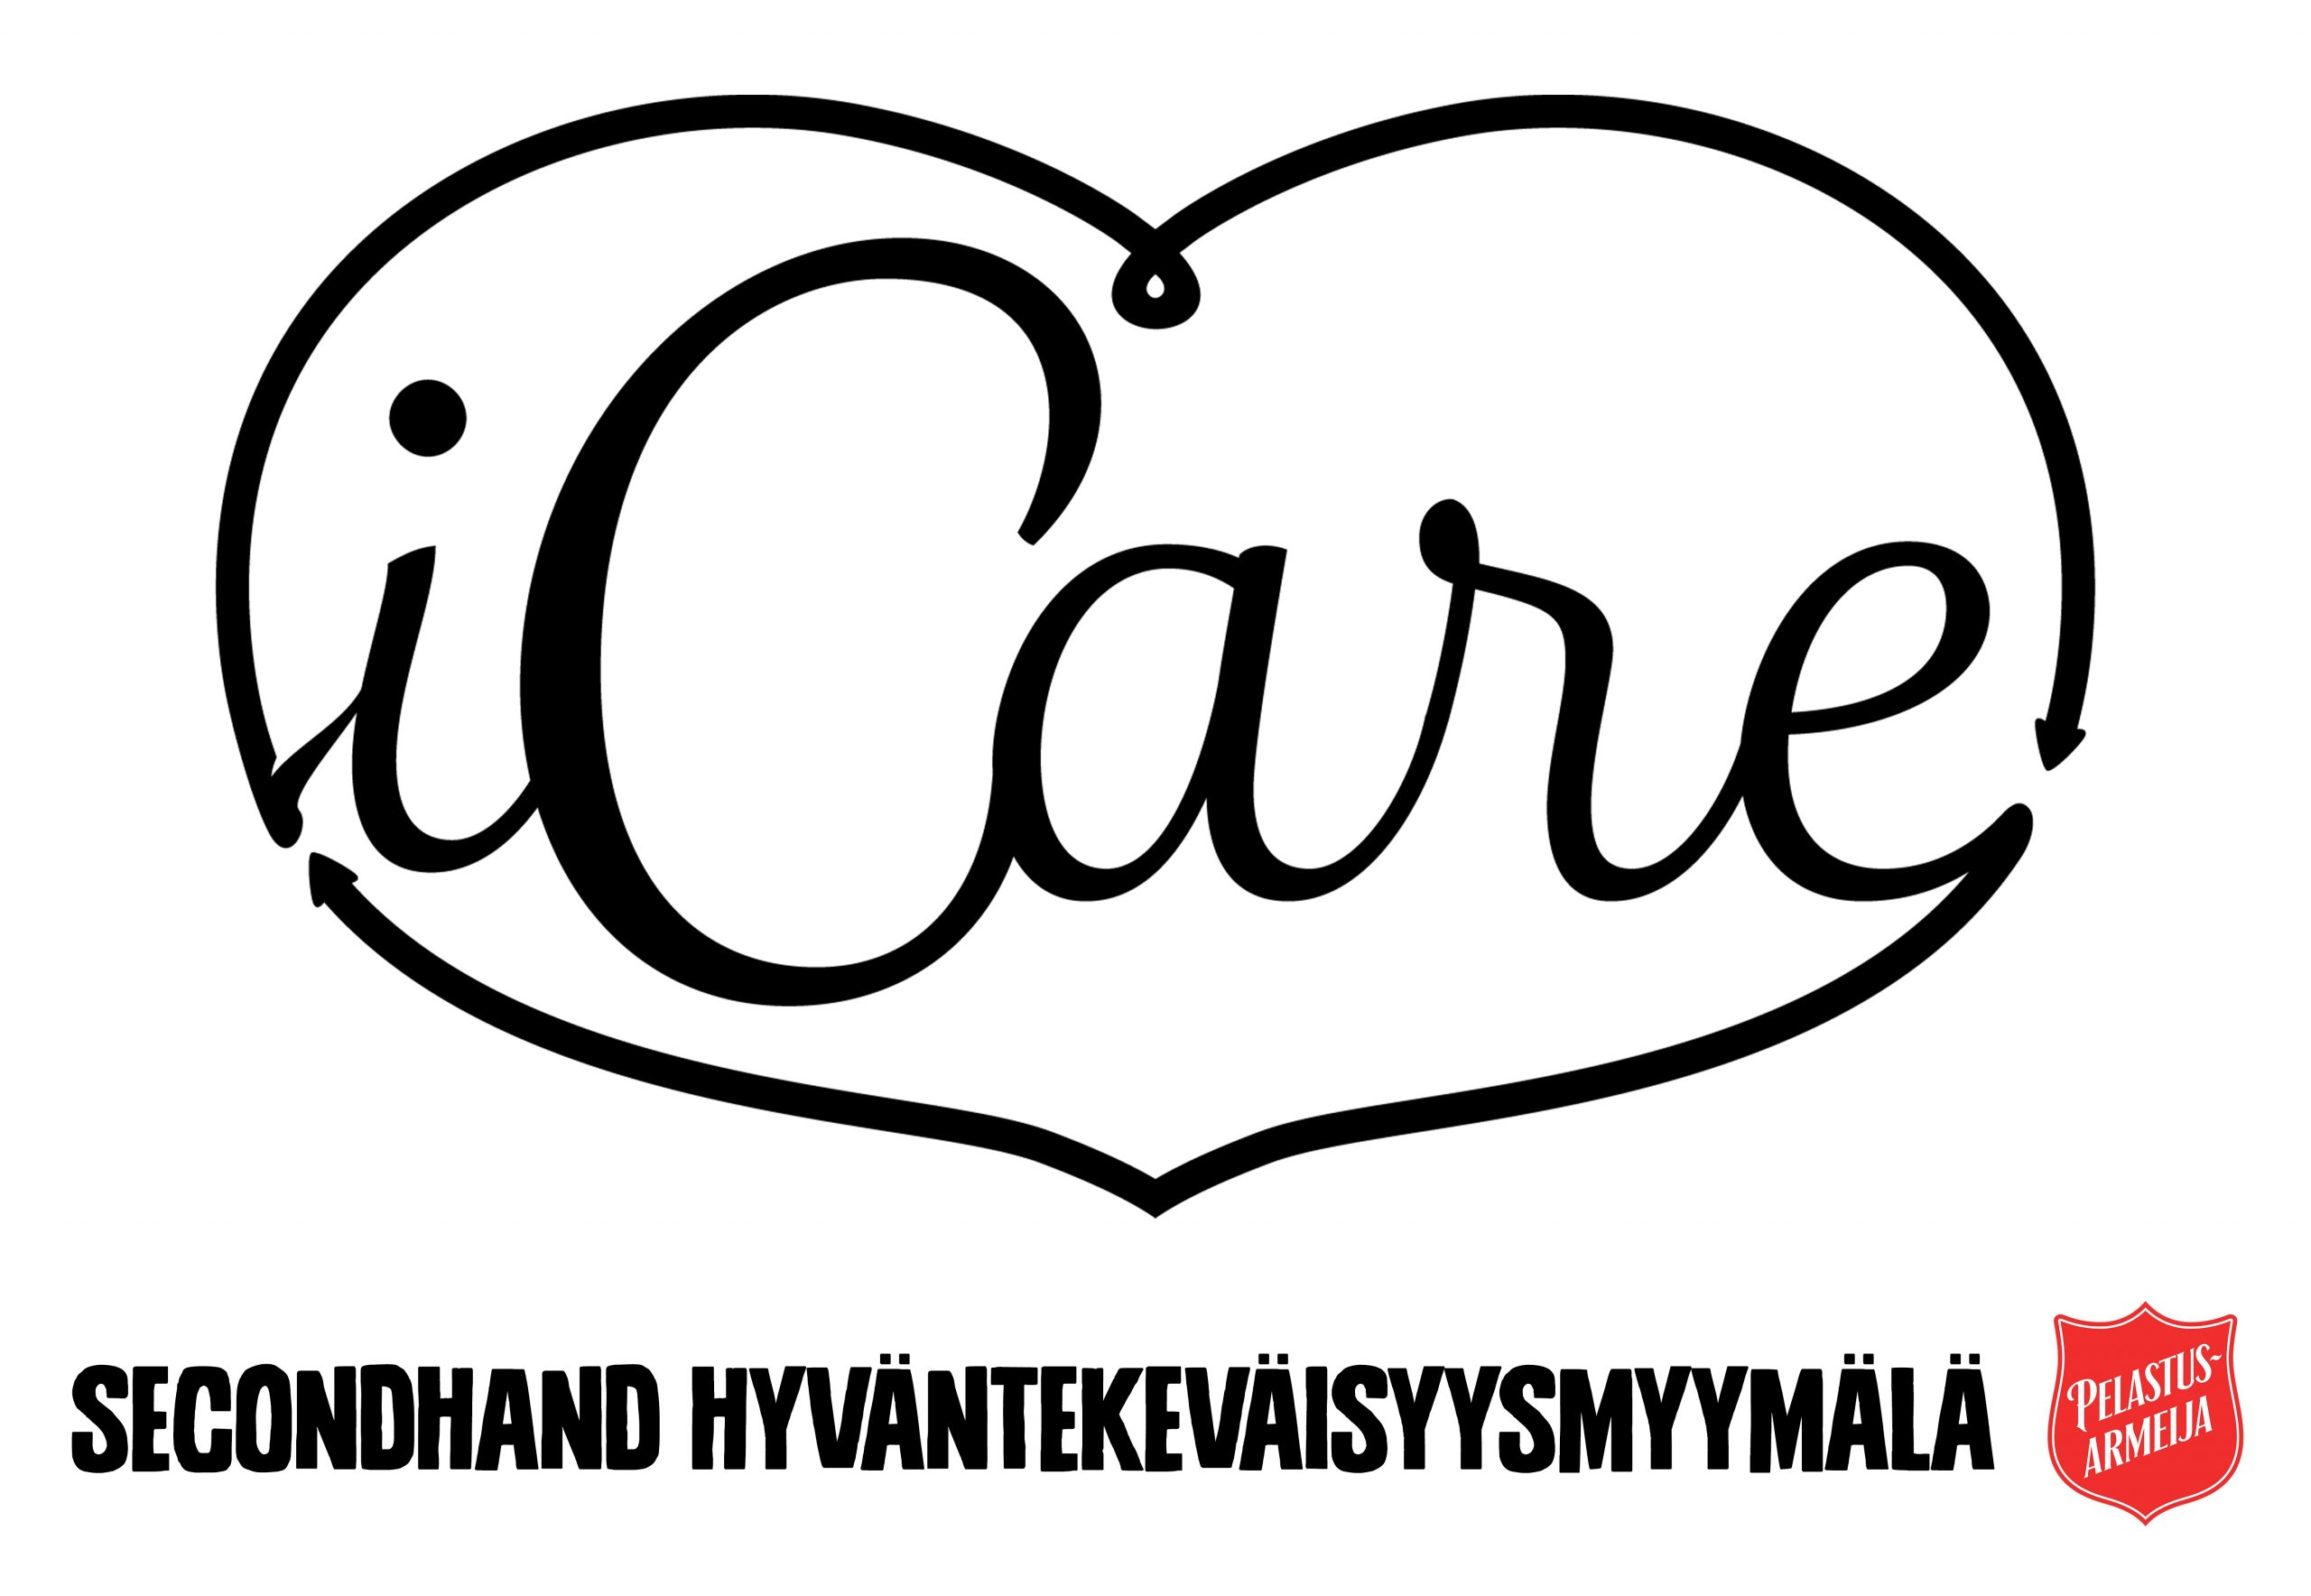 iCare secondhand